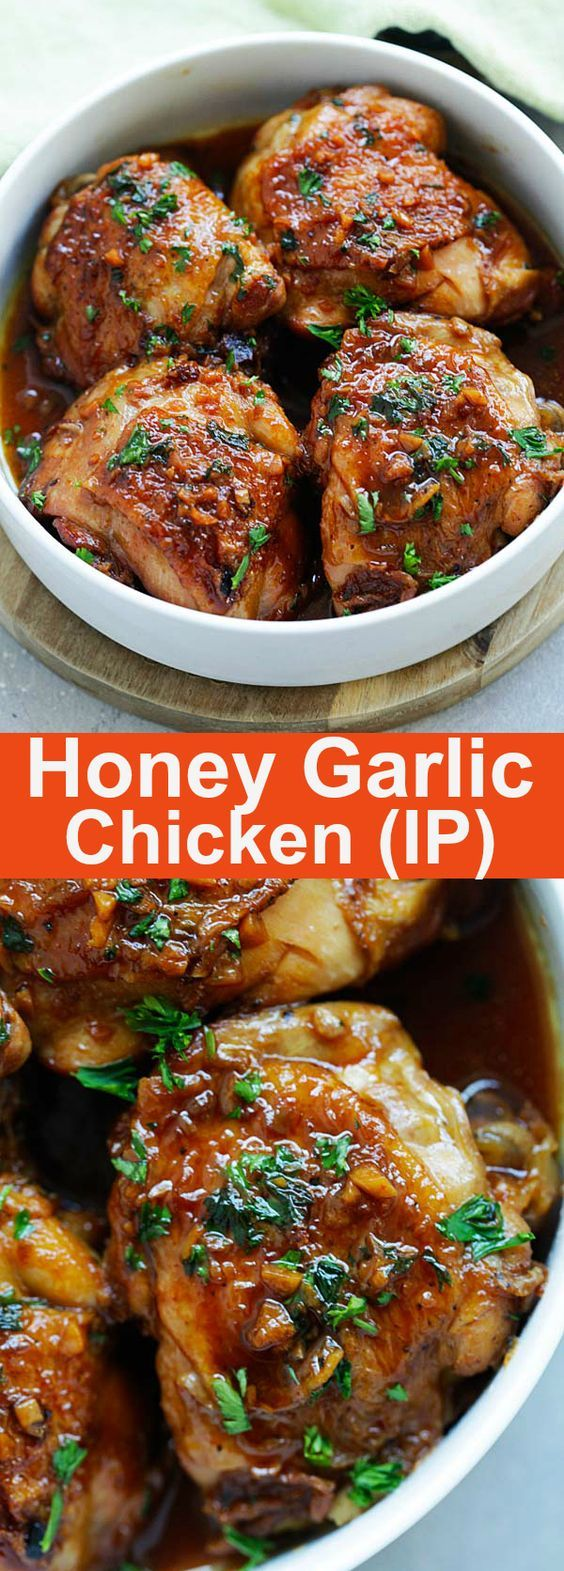 Honey Garlic Chicken - moist, tender, fall-off-the-bone chicken thighs in savory and sweet honey garlic sauce and made in an Instant Pot, so delicious | rasamalaysia.com